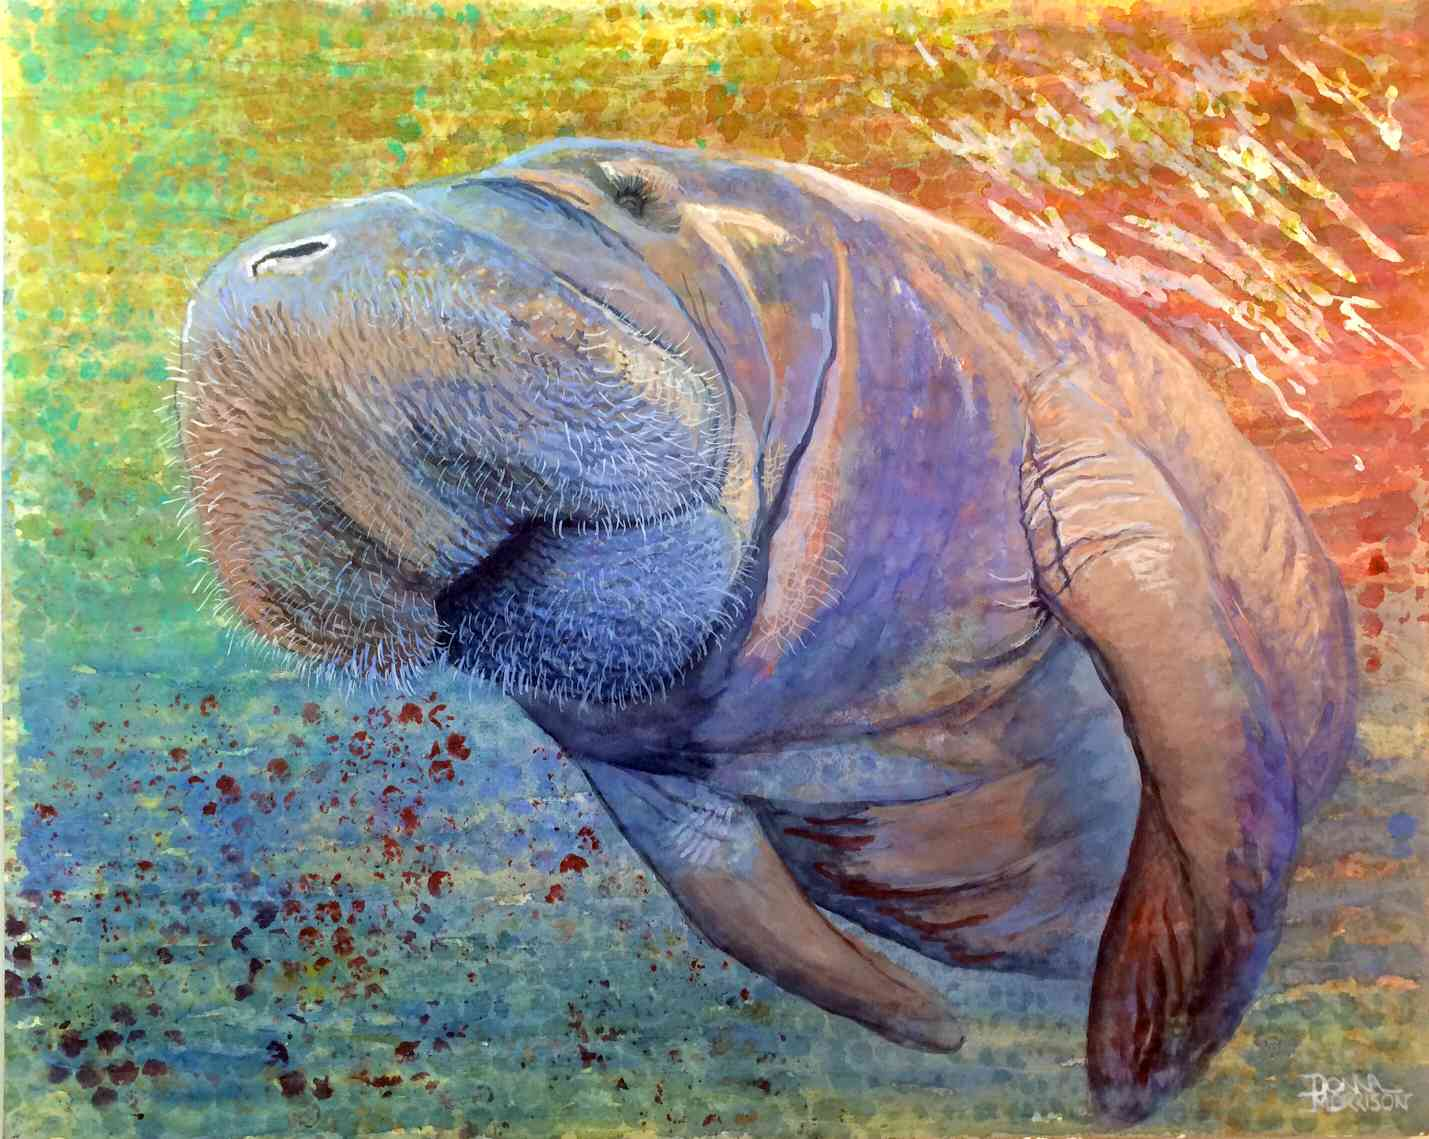 Shades of a Manatee